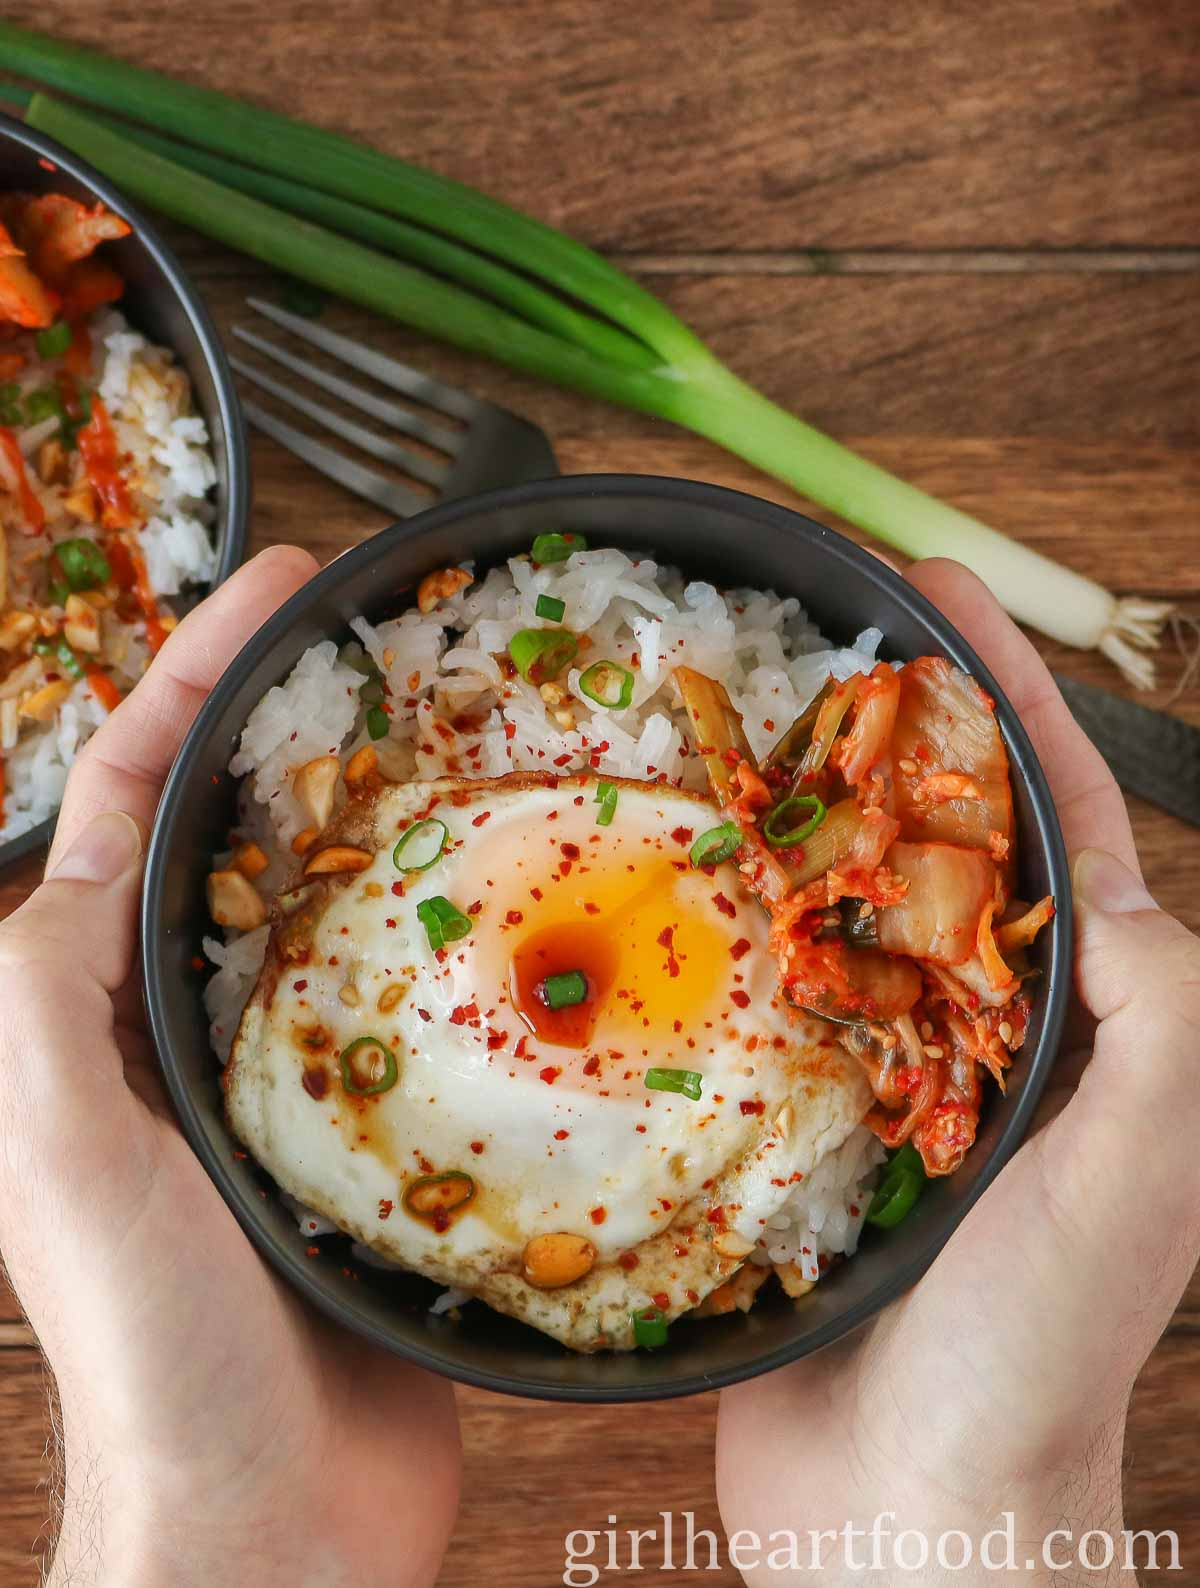 Two hands holding a fried egg and rice bowl.